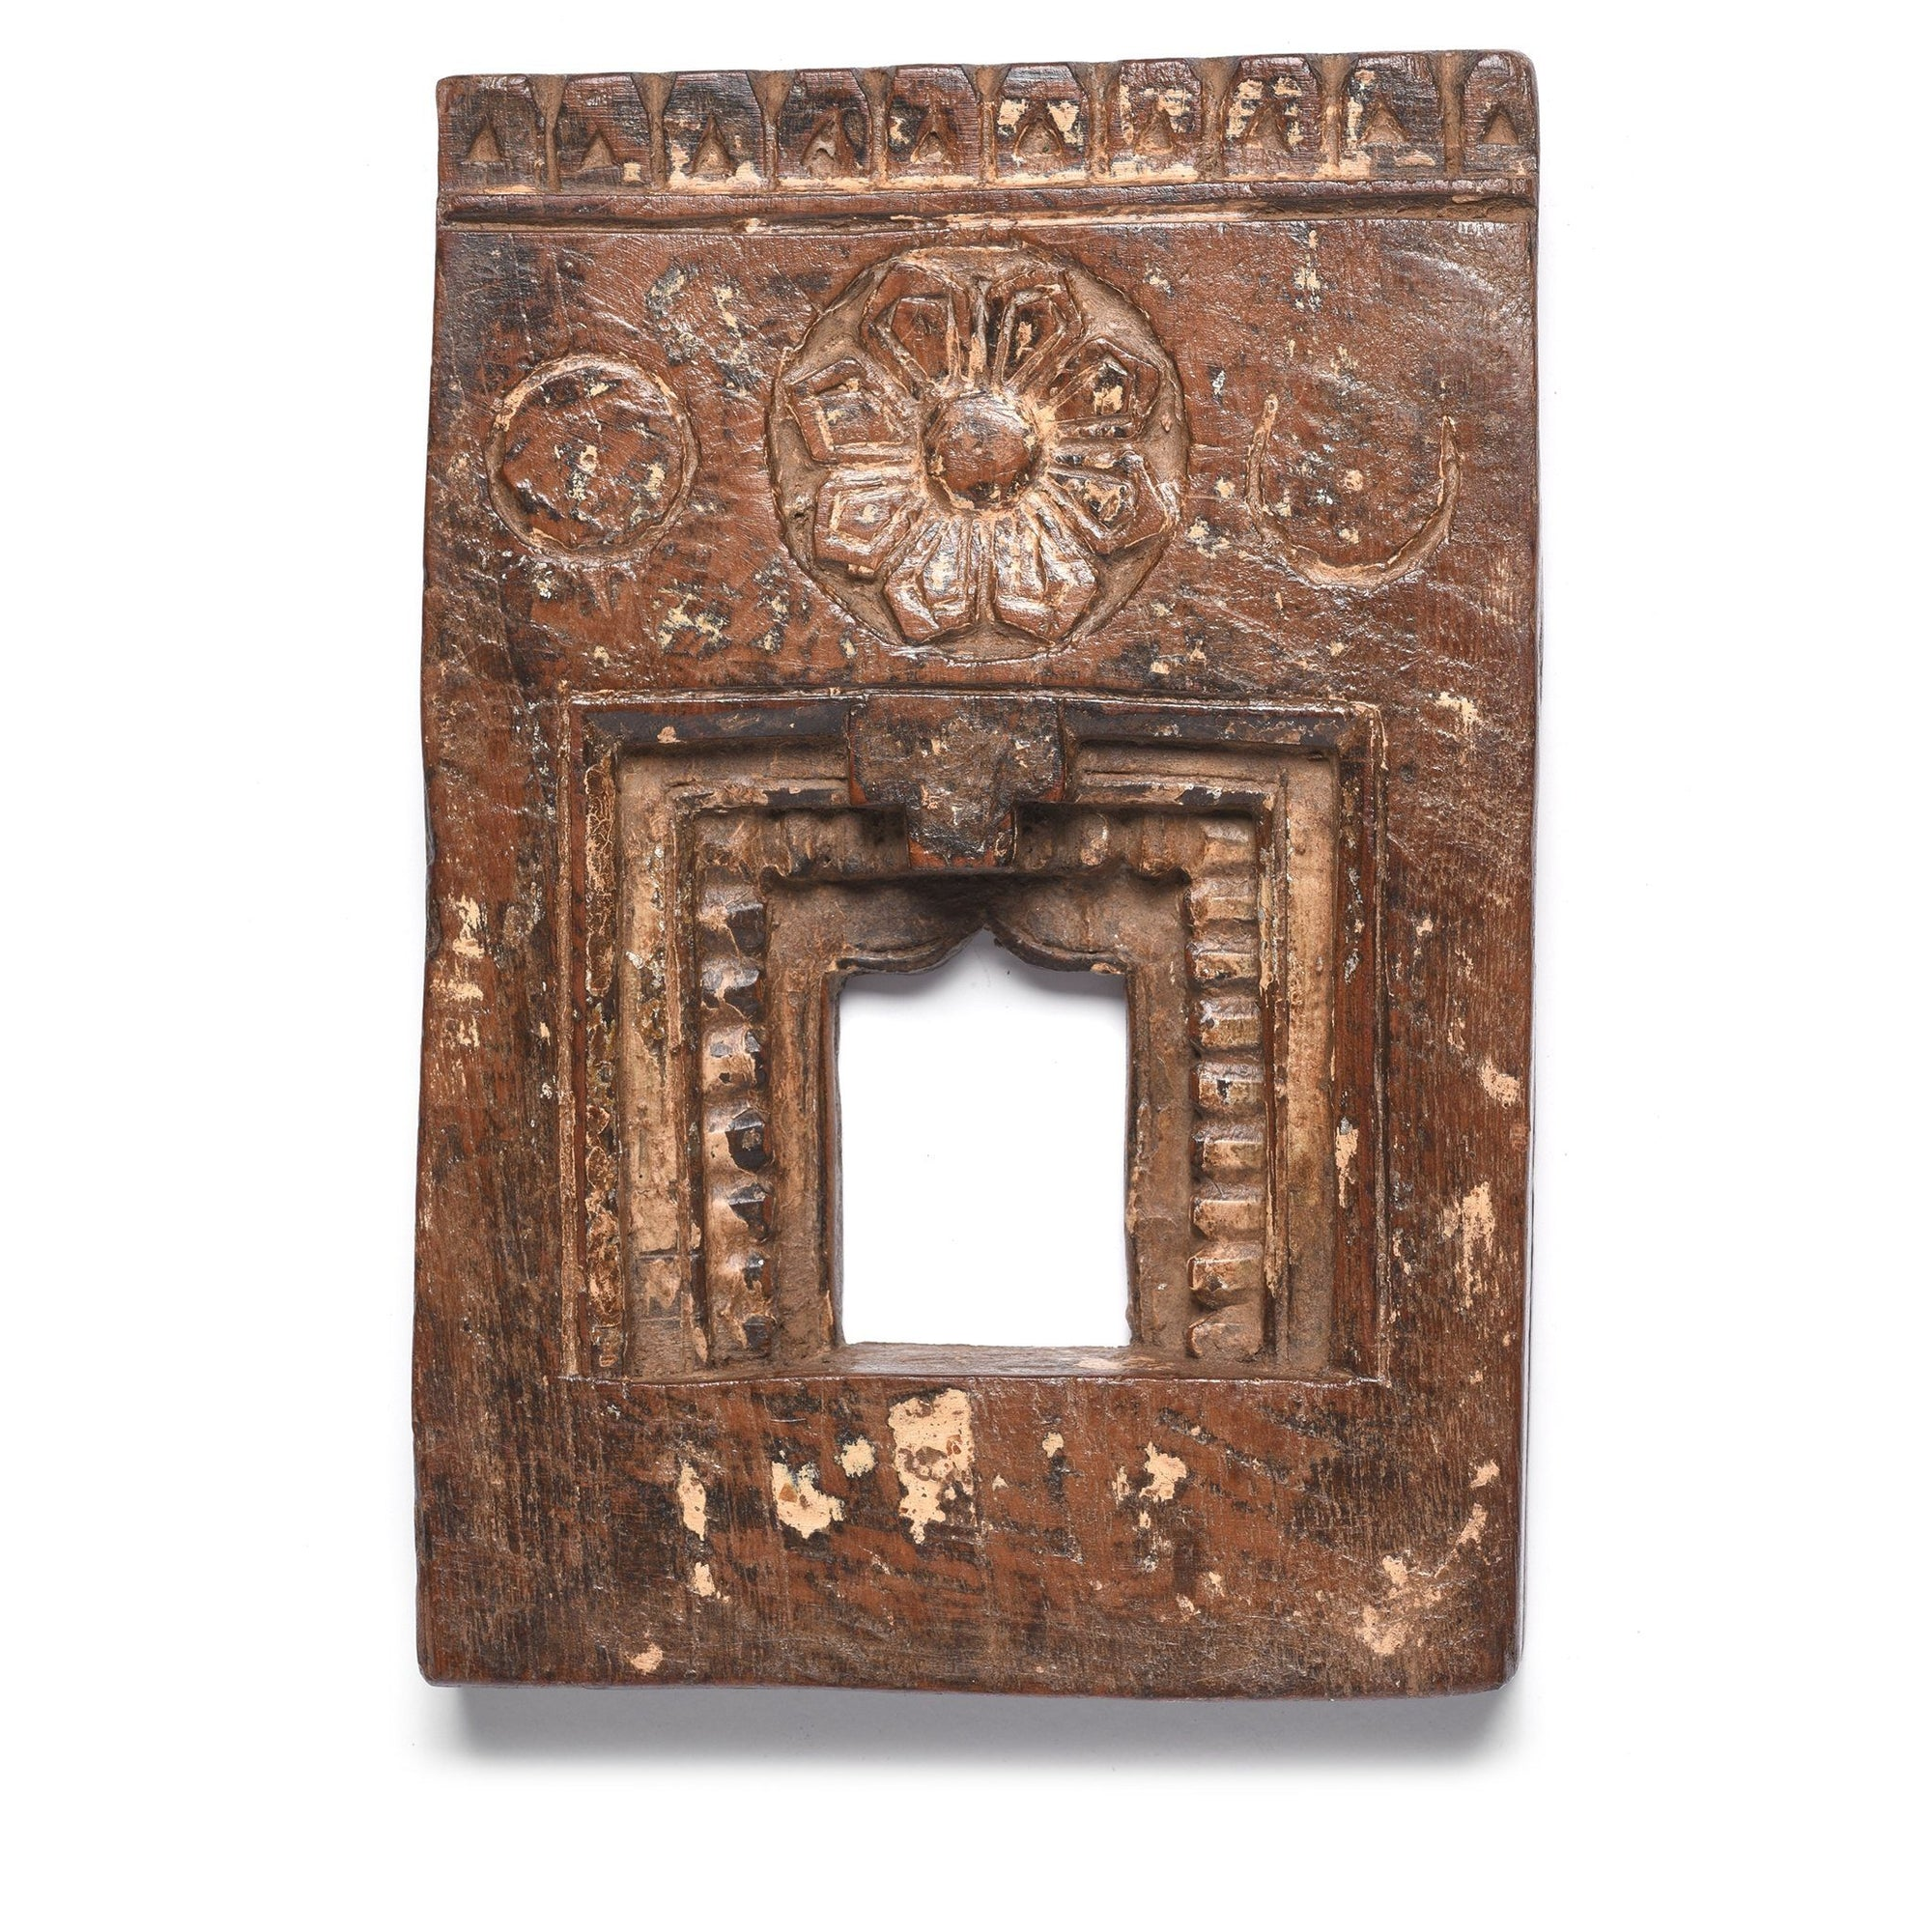 Carved Teak Votive Panel from Andra Pradesh - 19thC - 11.5 x 2.5 x 19.5  (wxdxh cms) - A6354V2